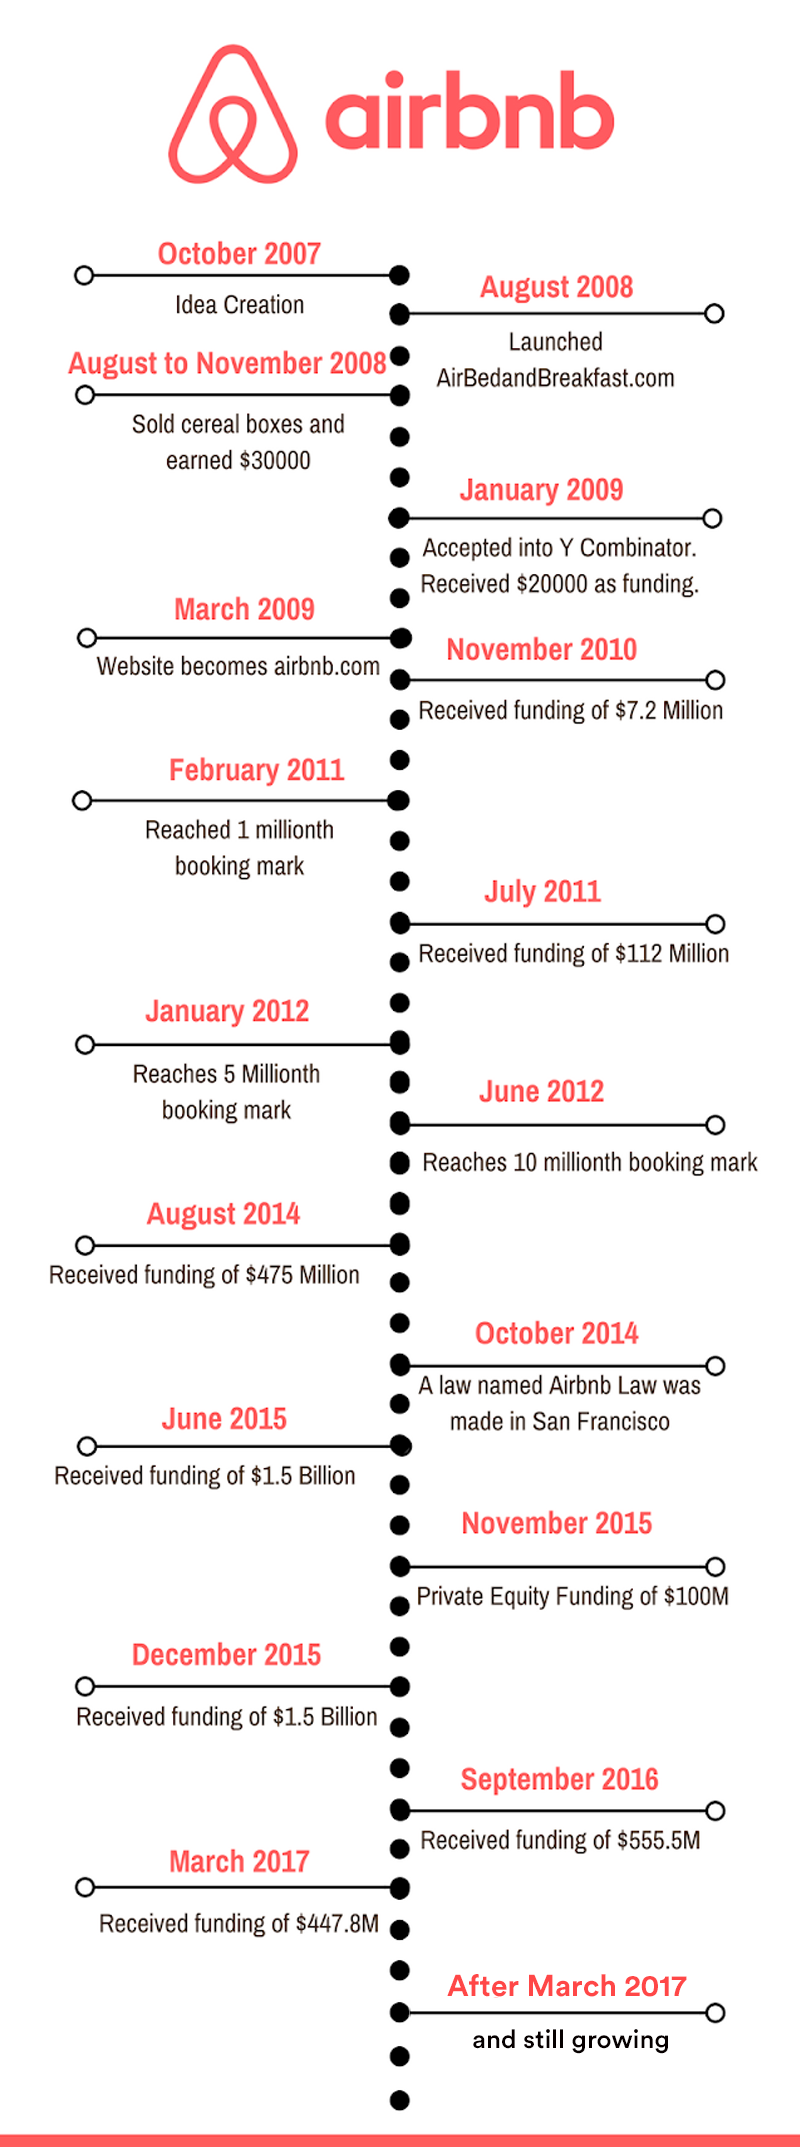 Timeline of Airbnb